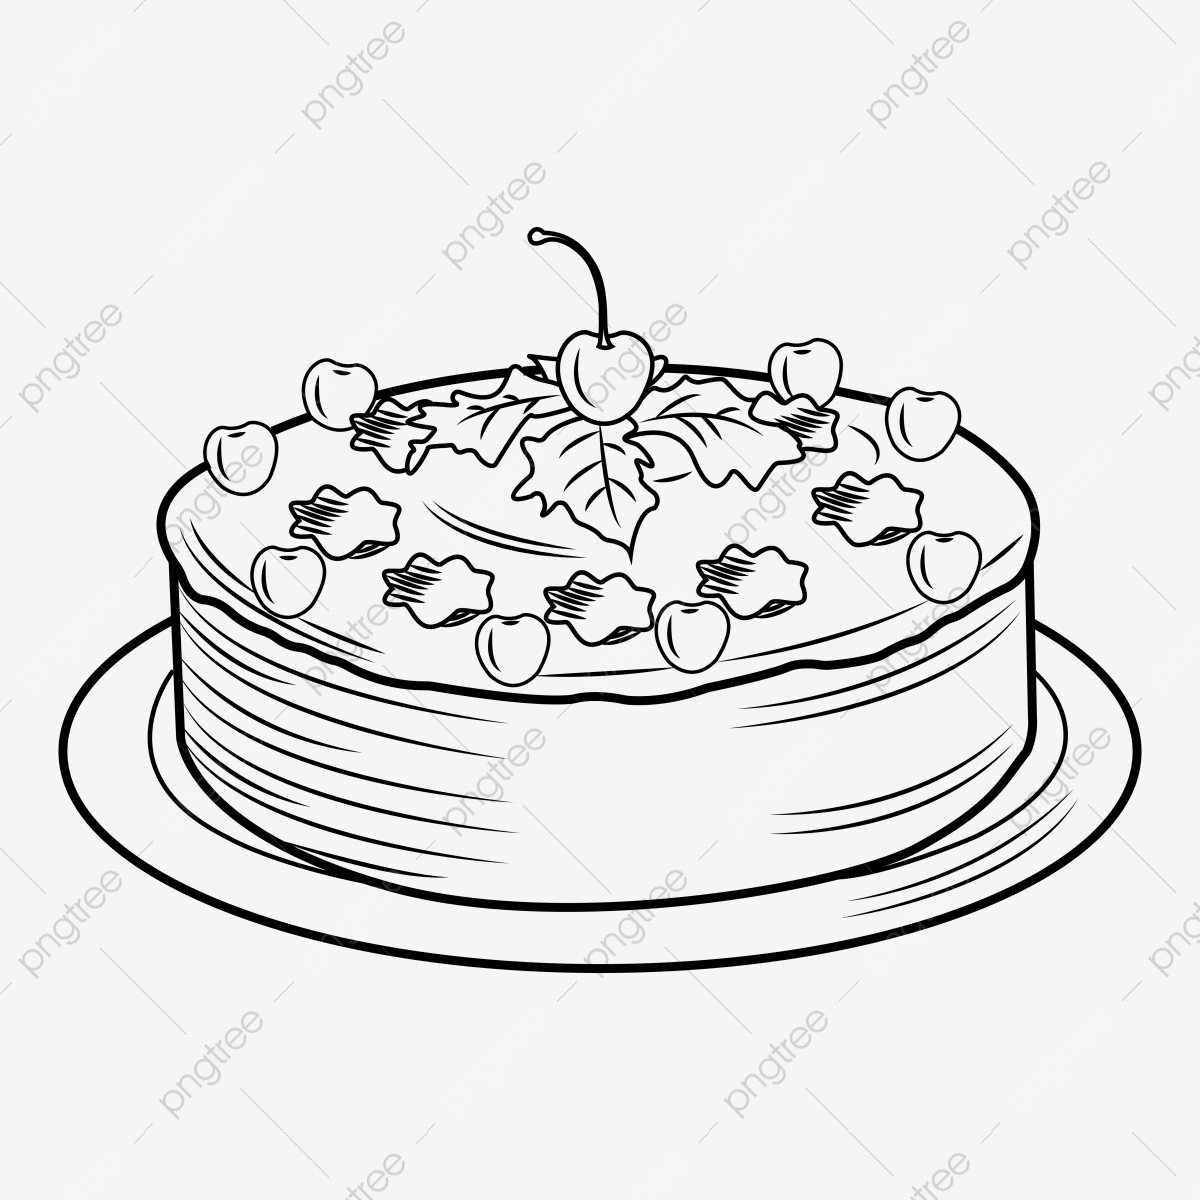 Christmas Cake With Chocolate, Sparklers And Candle Royalty Free Cliparts,  Vectors, And Stock Illustration. Image 20620802.